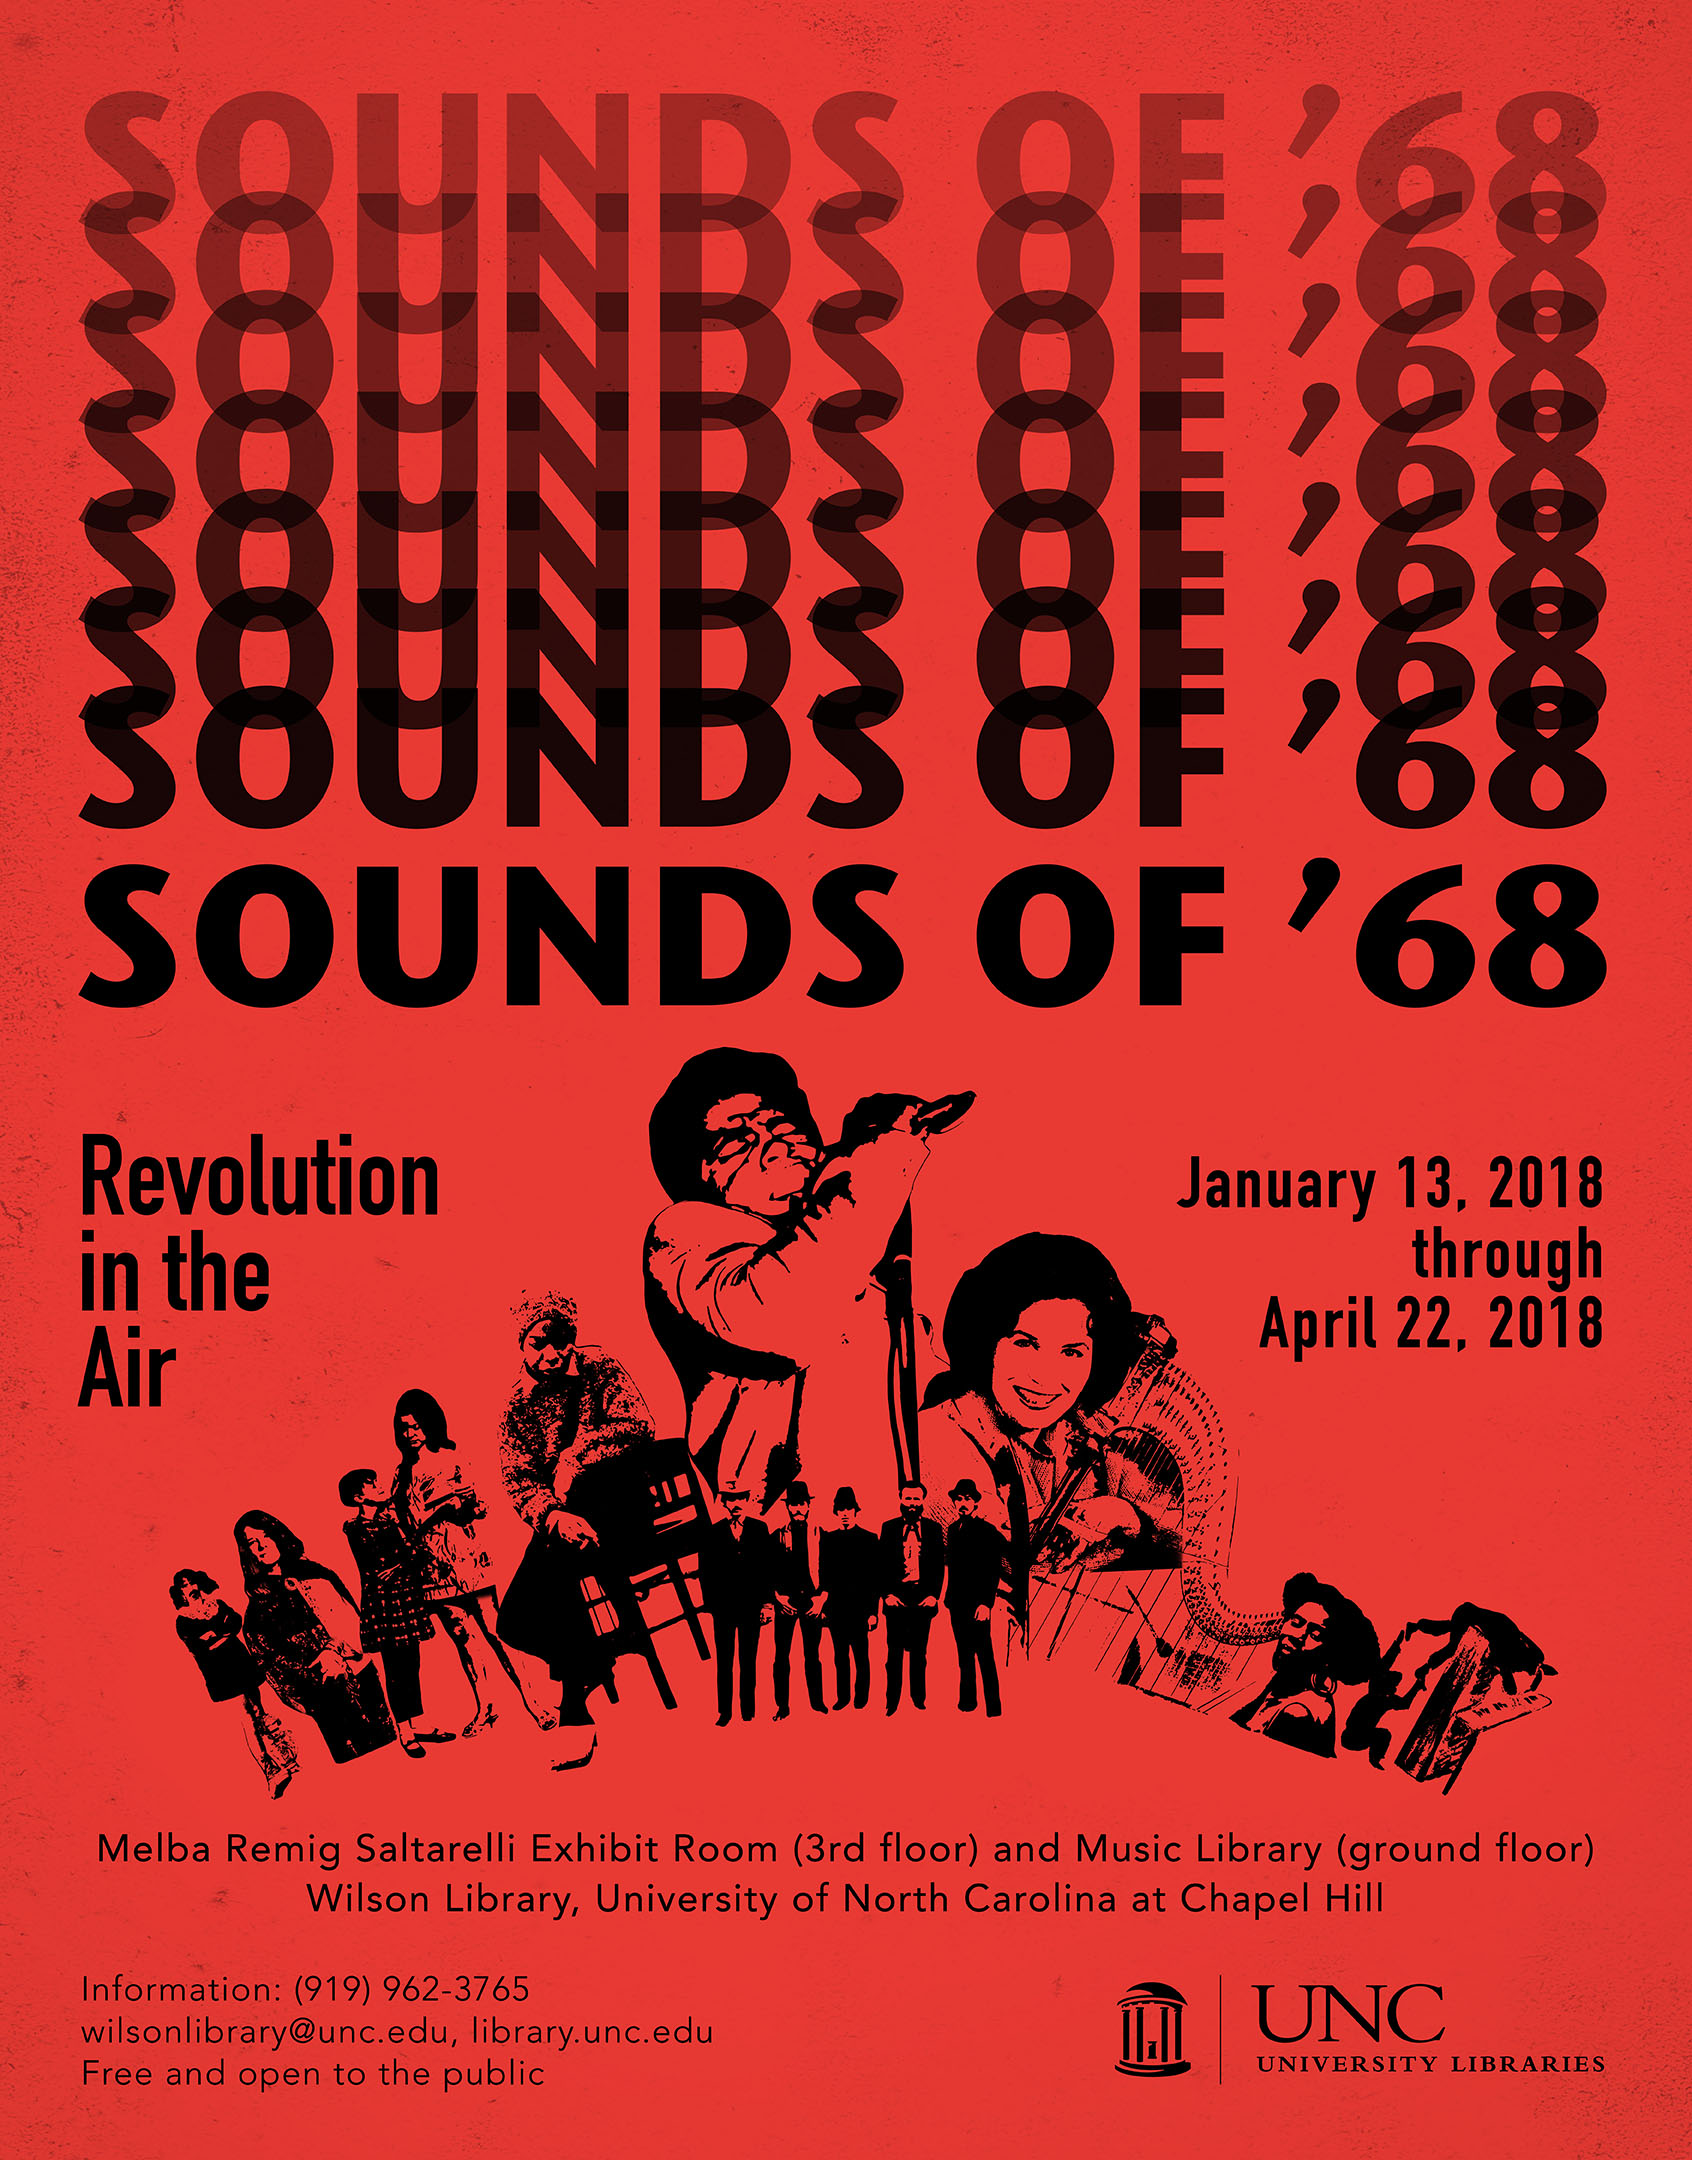 the poster that advertised the Sounds of '68: Revolution in the Air exhibition. A montage of portraits in silhouette of artists included in the exhibition is at the center of the poster. The artists featured are Frank Zappa, Janice Joplin, Jeanie C Riley, Nina Simone, James Brown, The Band, Loretta Lynne, and Alice Coltrane.